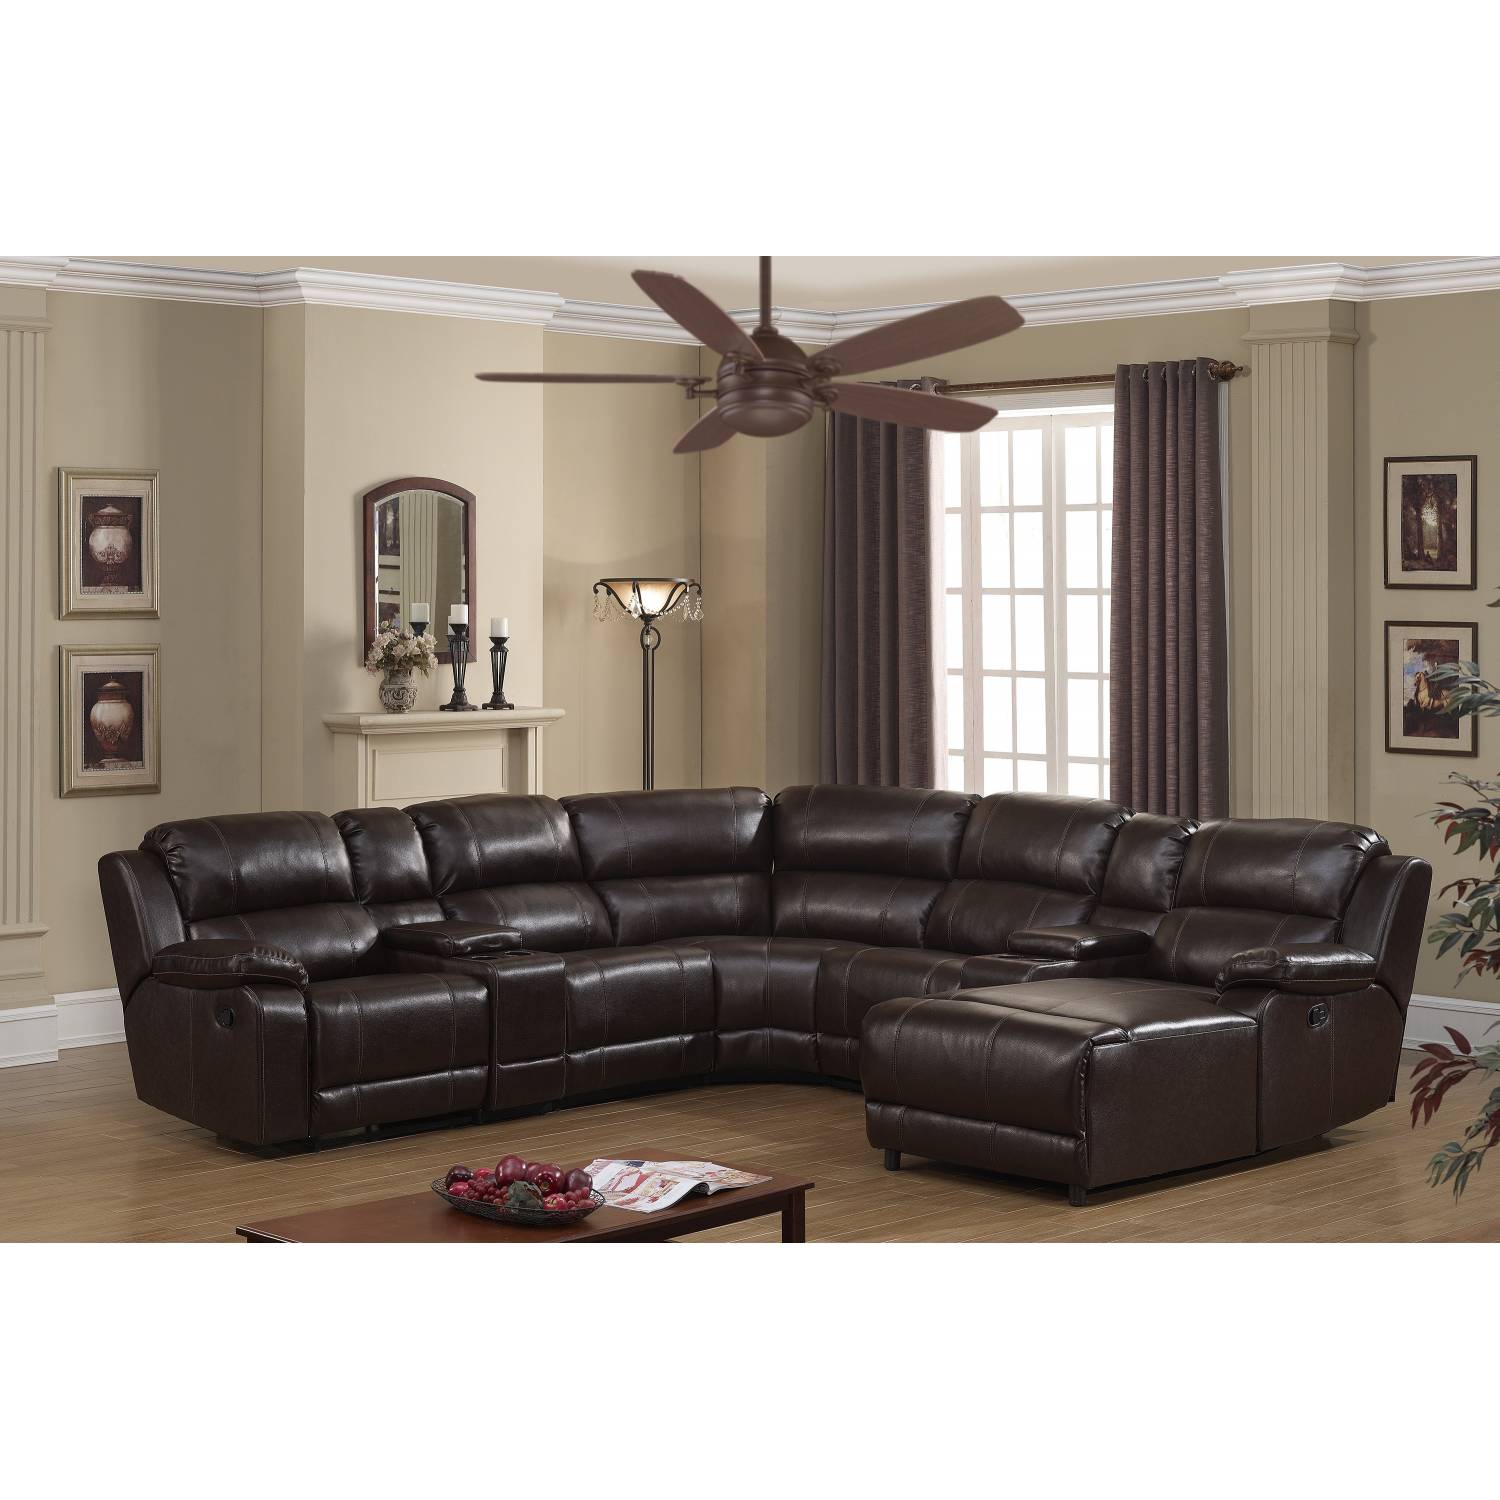 COLTON DARK BROWN SECTIONAL SOFA